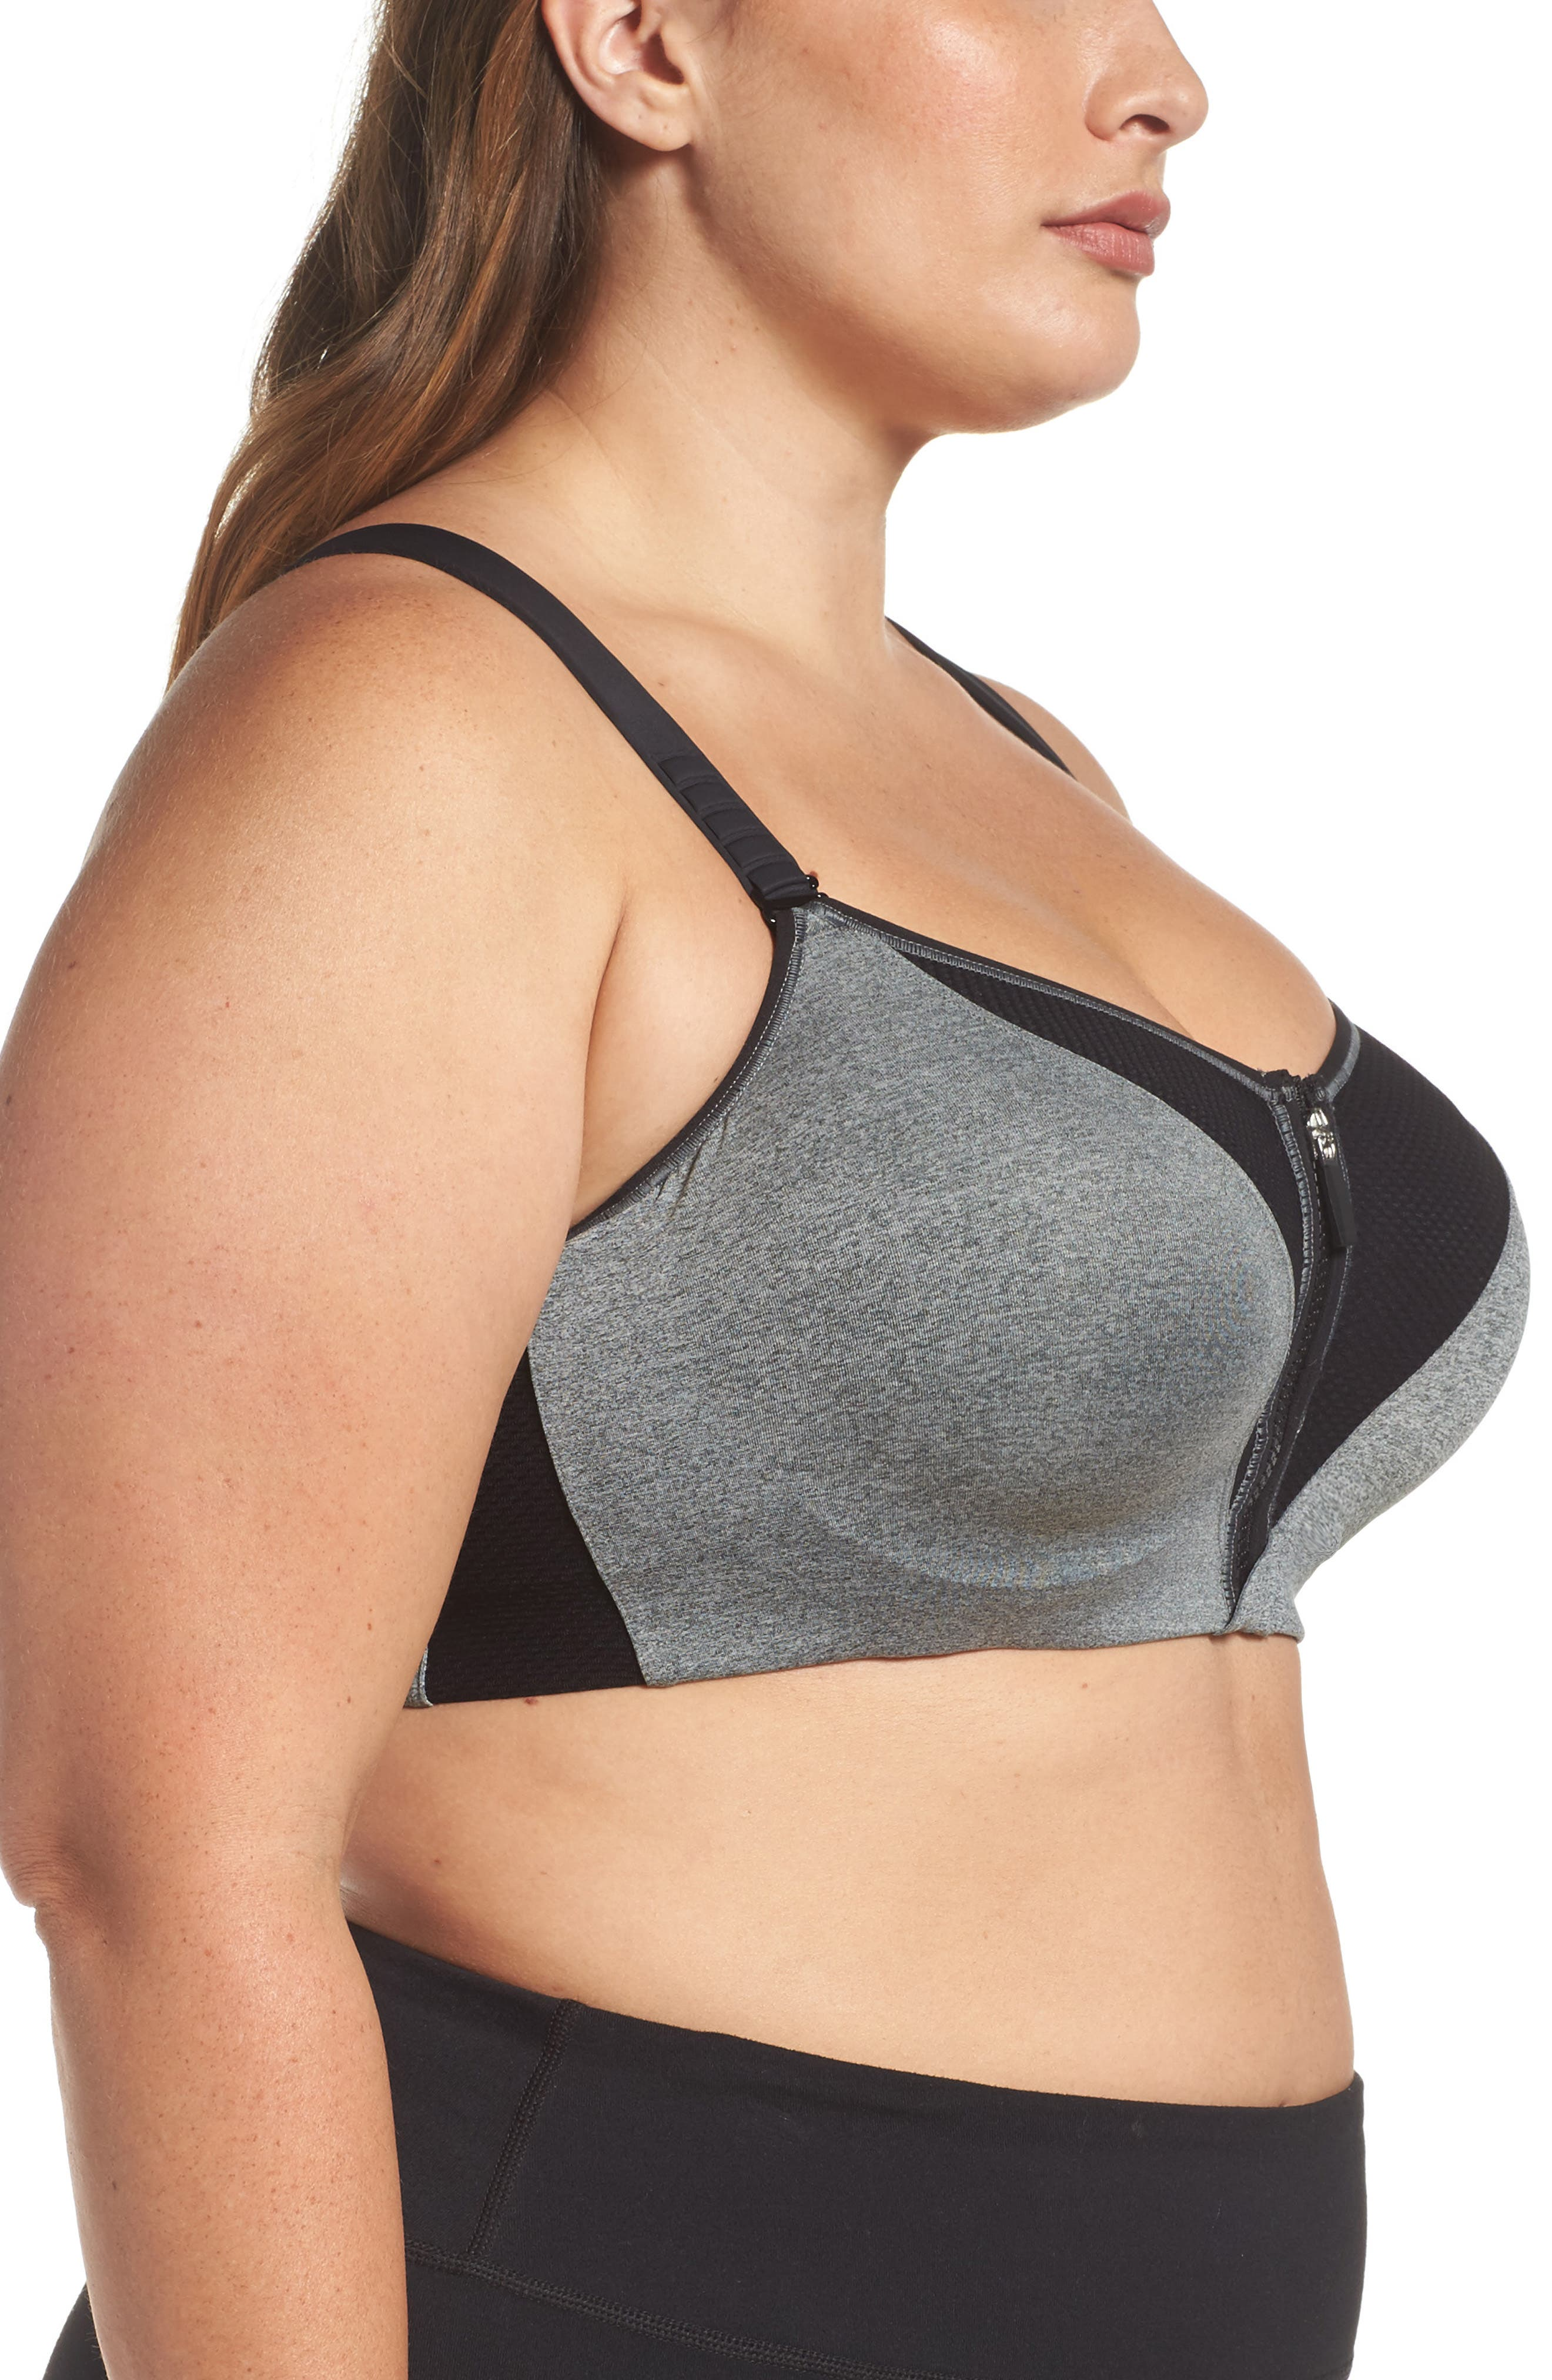 Zip Fit Underwire Sports Bra,                             Alternate thumbnail 3, color,                             032